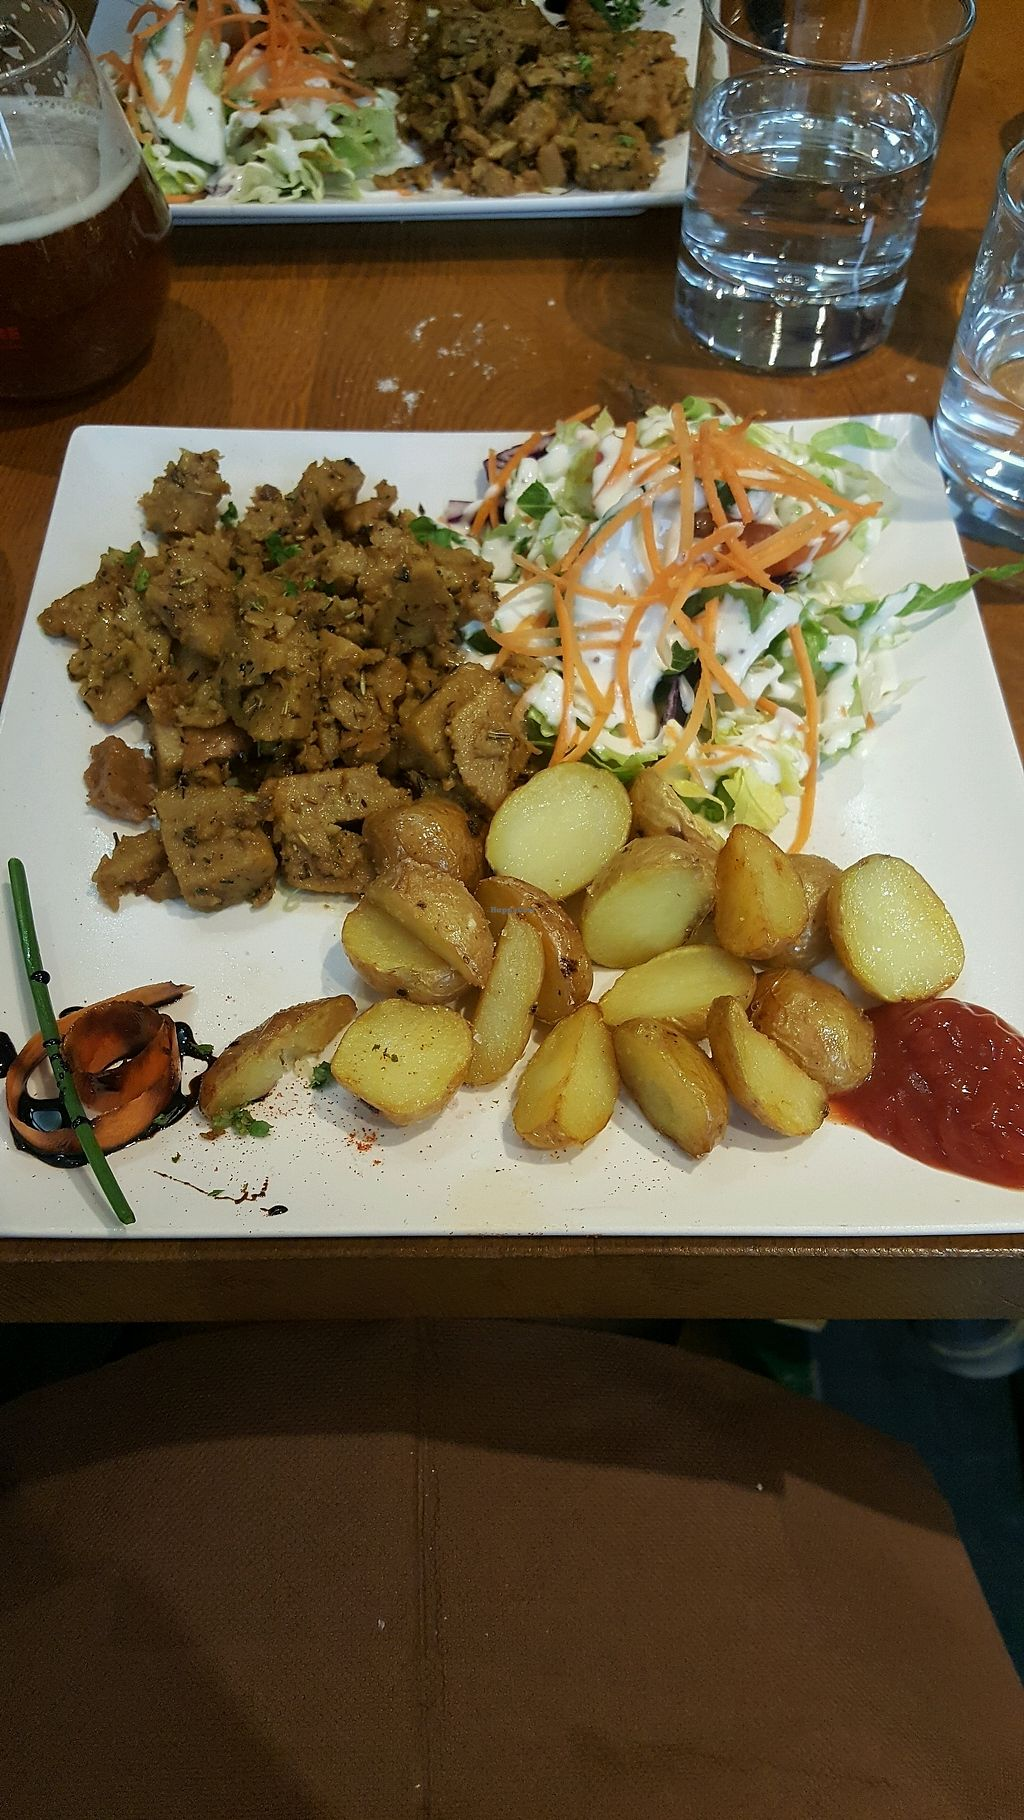 """Photo of Le Grenier de Notre Dame  by <a href=""""/members/profile/NicNewbs"""">NicNewbs</a> <br/>lovely vegan kebab special <br/> April 6, 2018  - <a href='/contact/abuse/image/3523/381565'>Report</a>"""